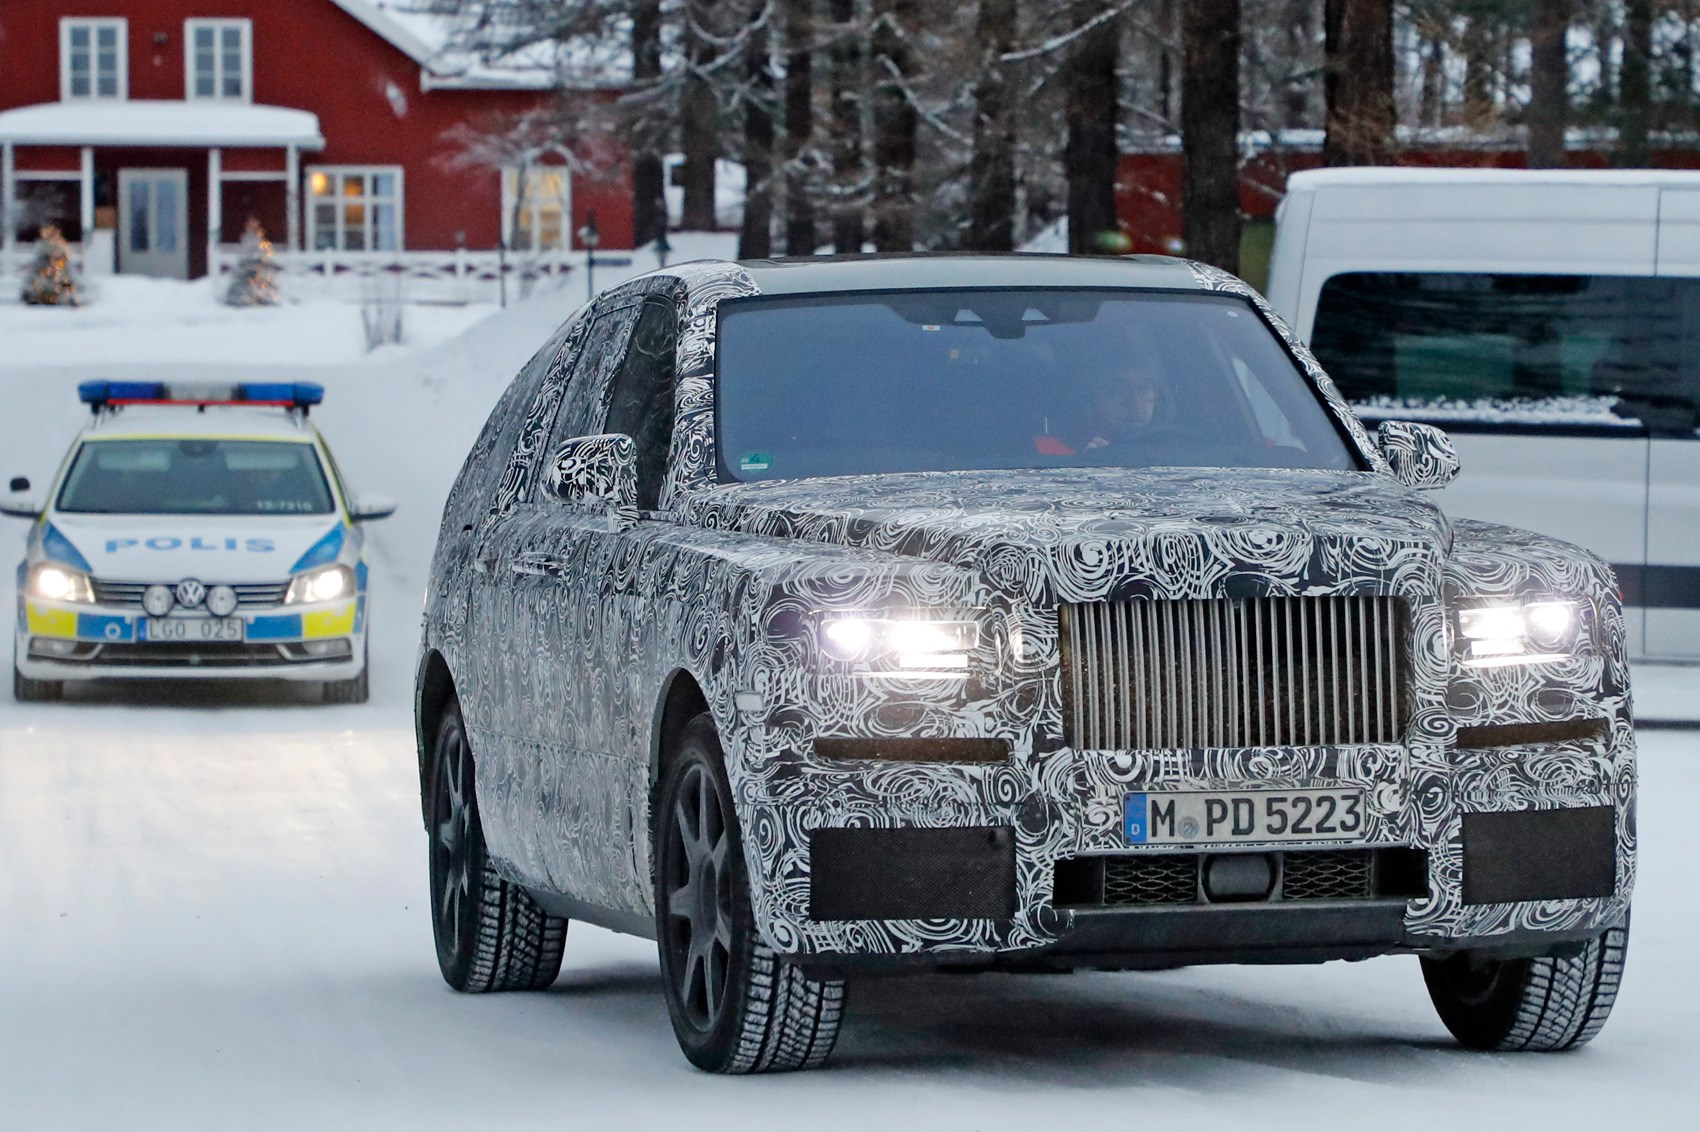 RollsRoyce Cullinan SUV spy photos specs prices by CAR Magazine